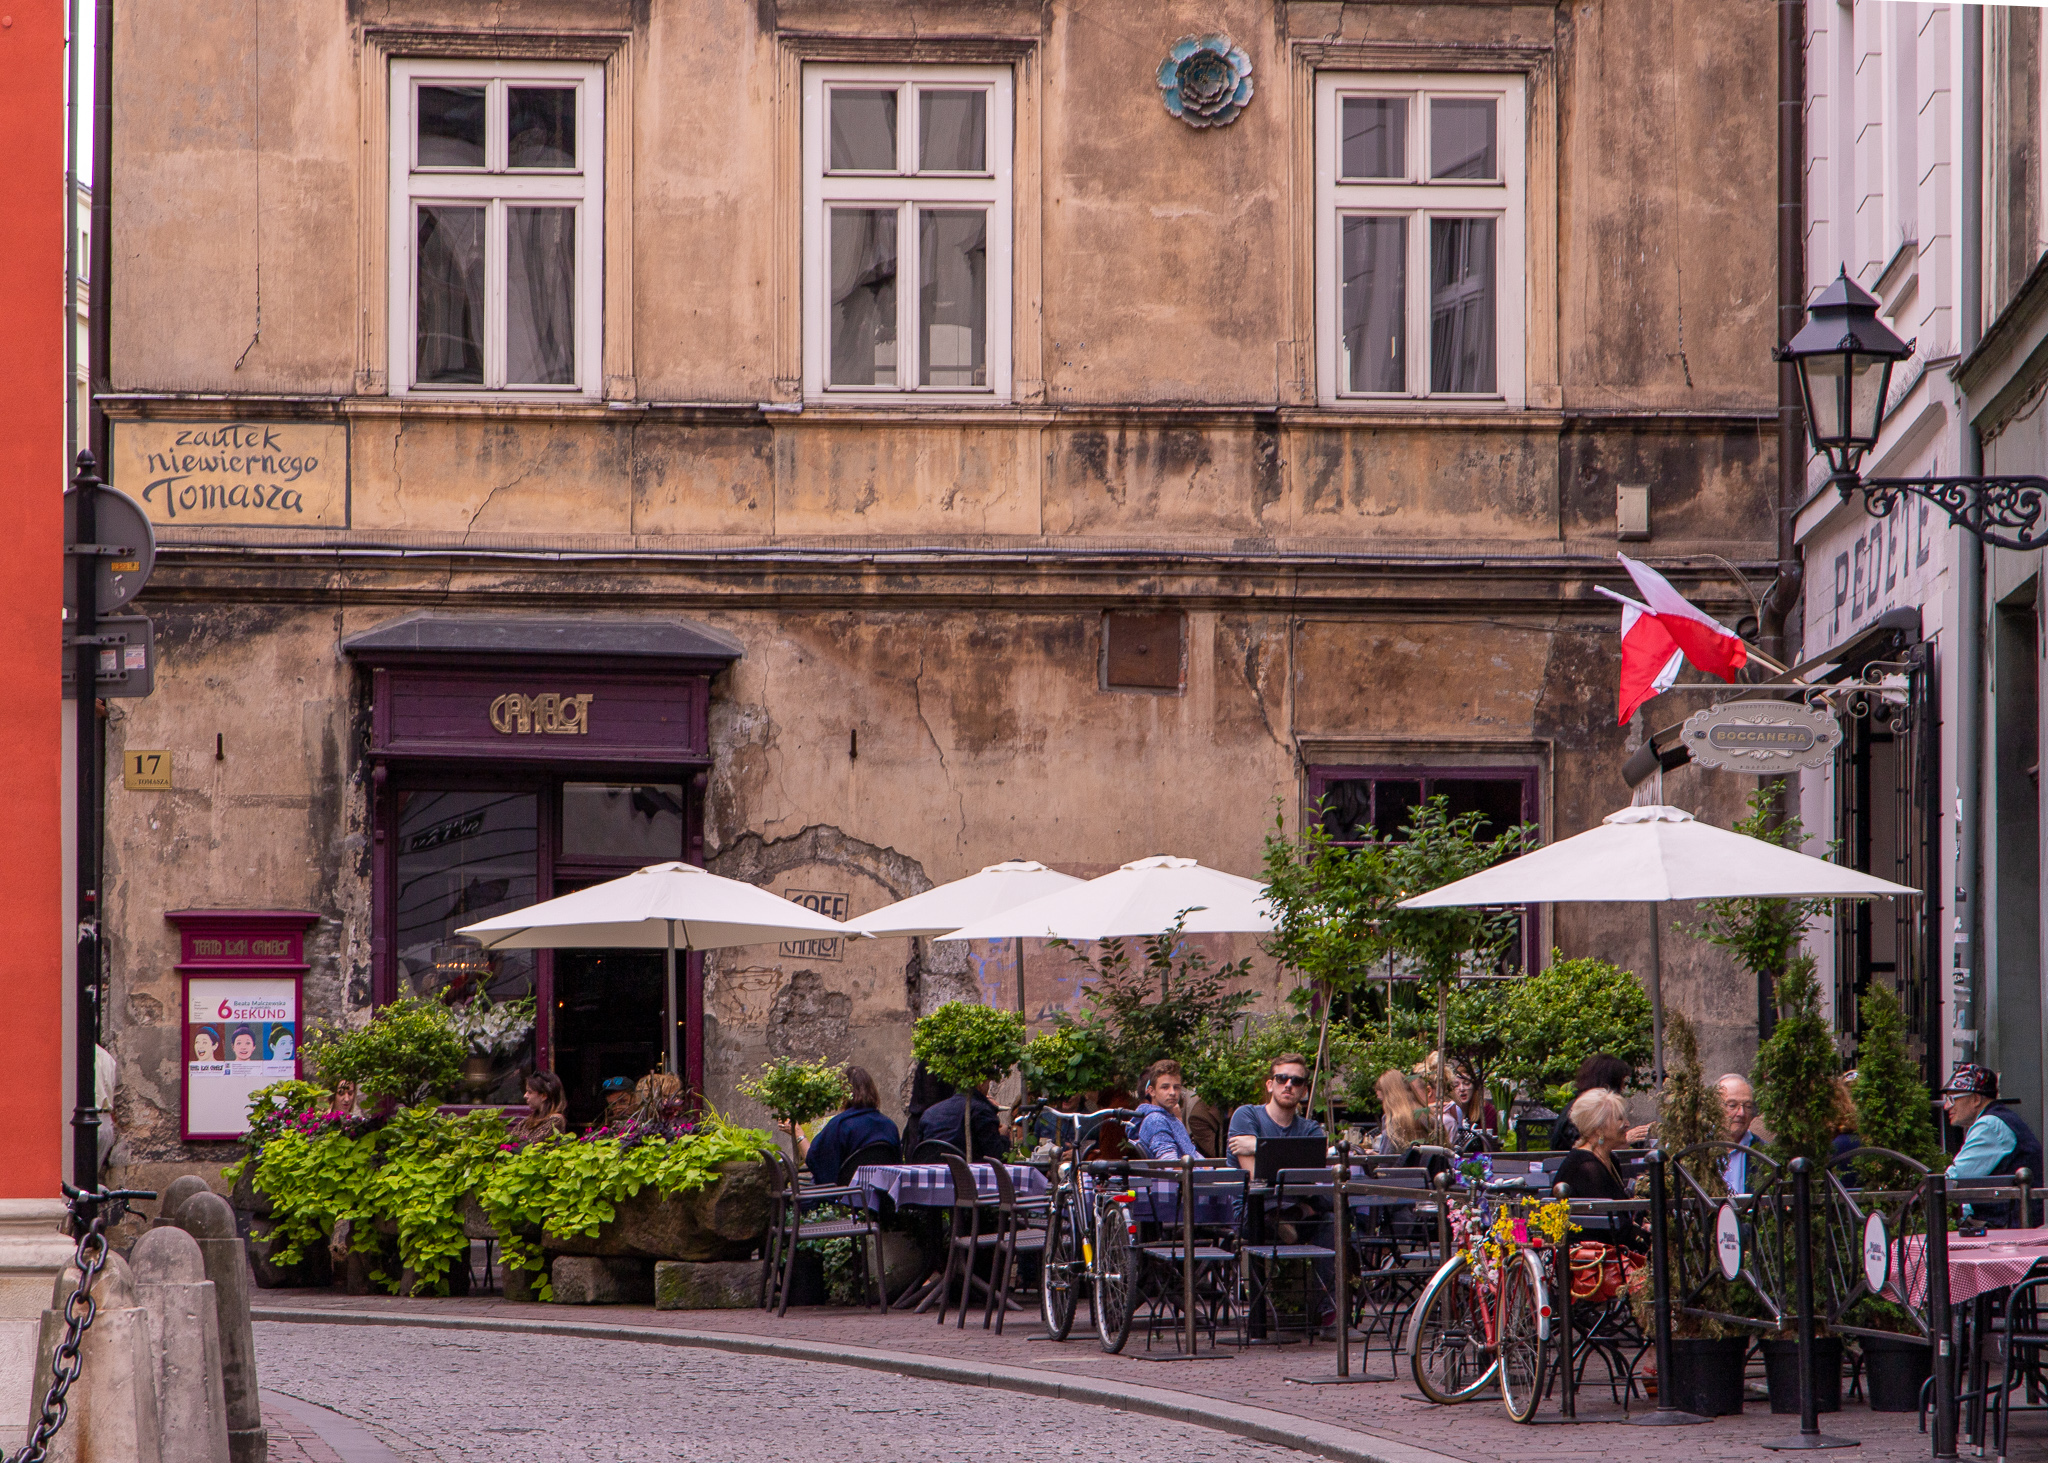 The cafe vibe is alive and well in Krakow